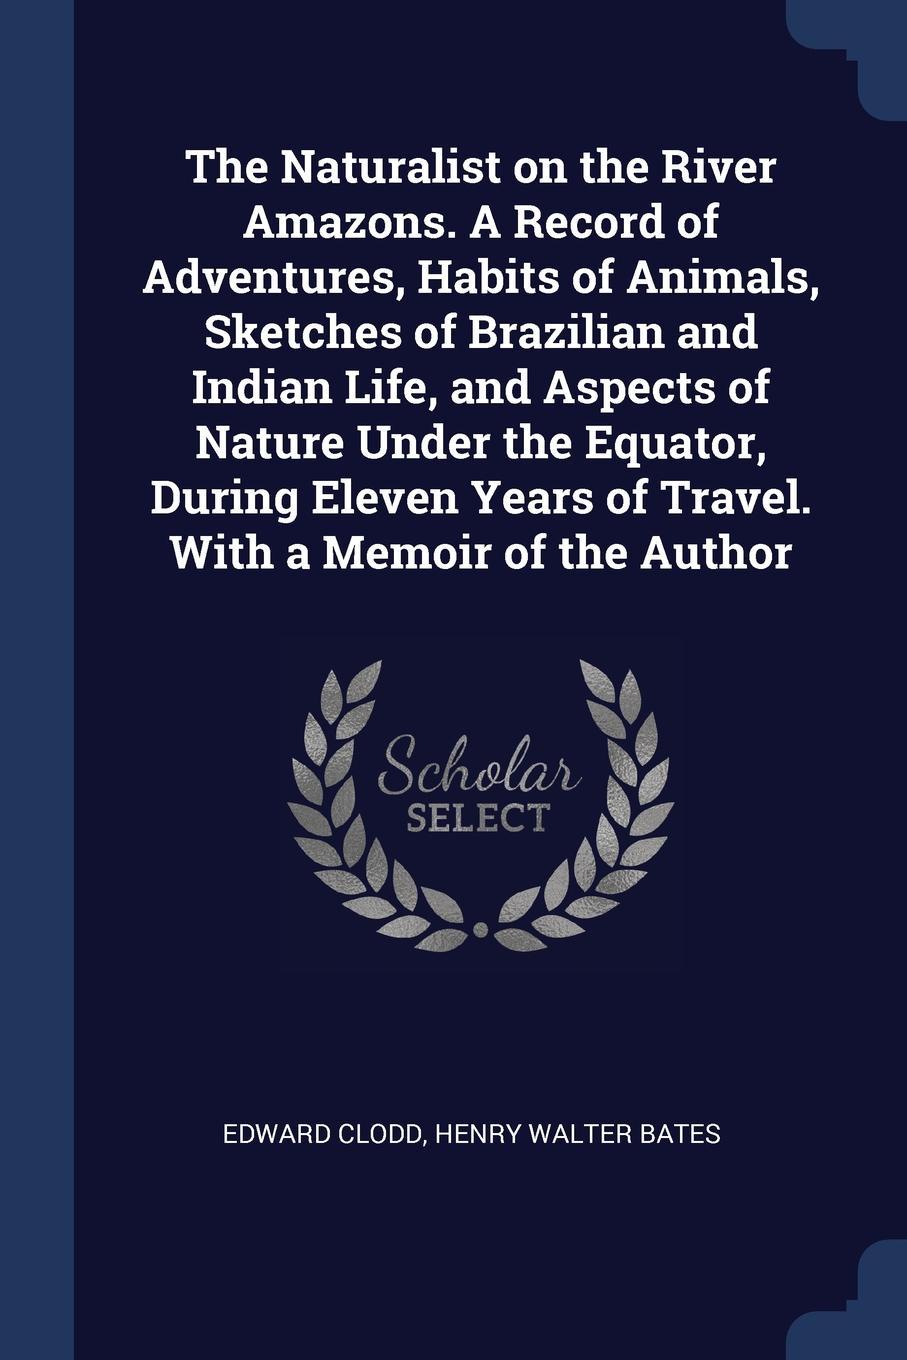 The Naturalist on the River Amazons. A Record of Adventures, Habits of Animals, Sketches of Brazilian and Indian Life, and Aspects of Nature Under the Equator, During Eleven Years of Travel. With a Memoir of the Author